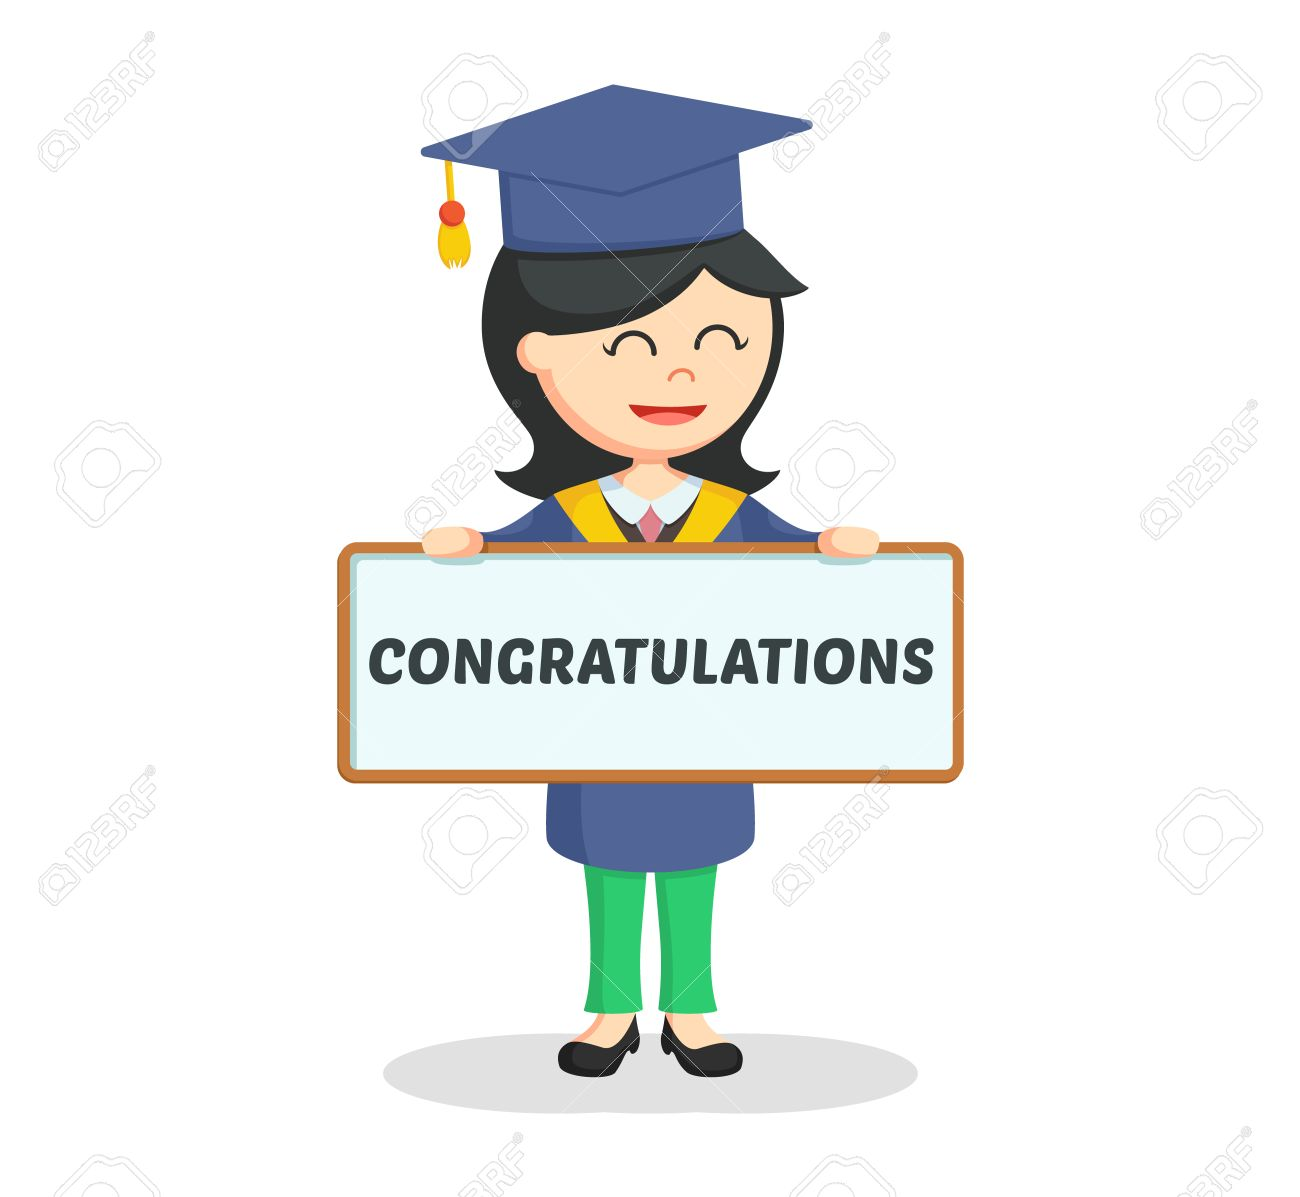 graduate female student with congratulation sign royalty free